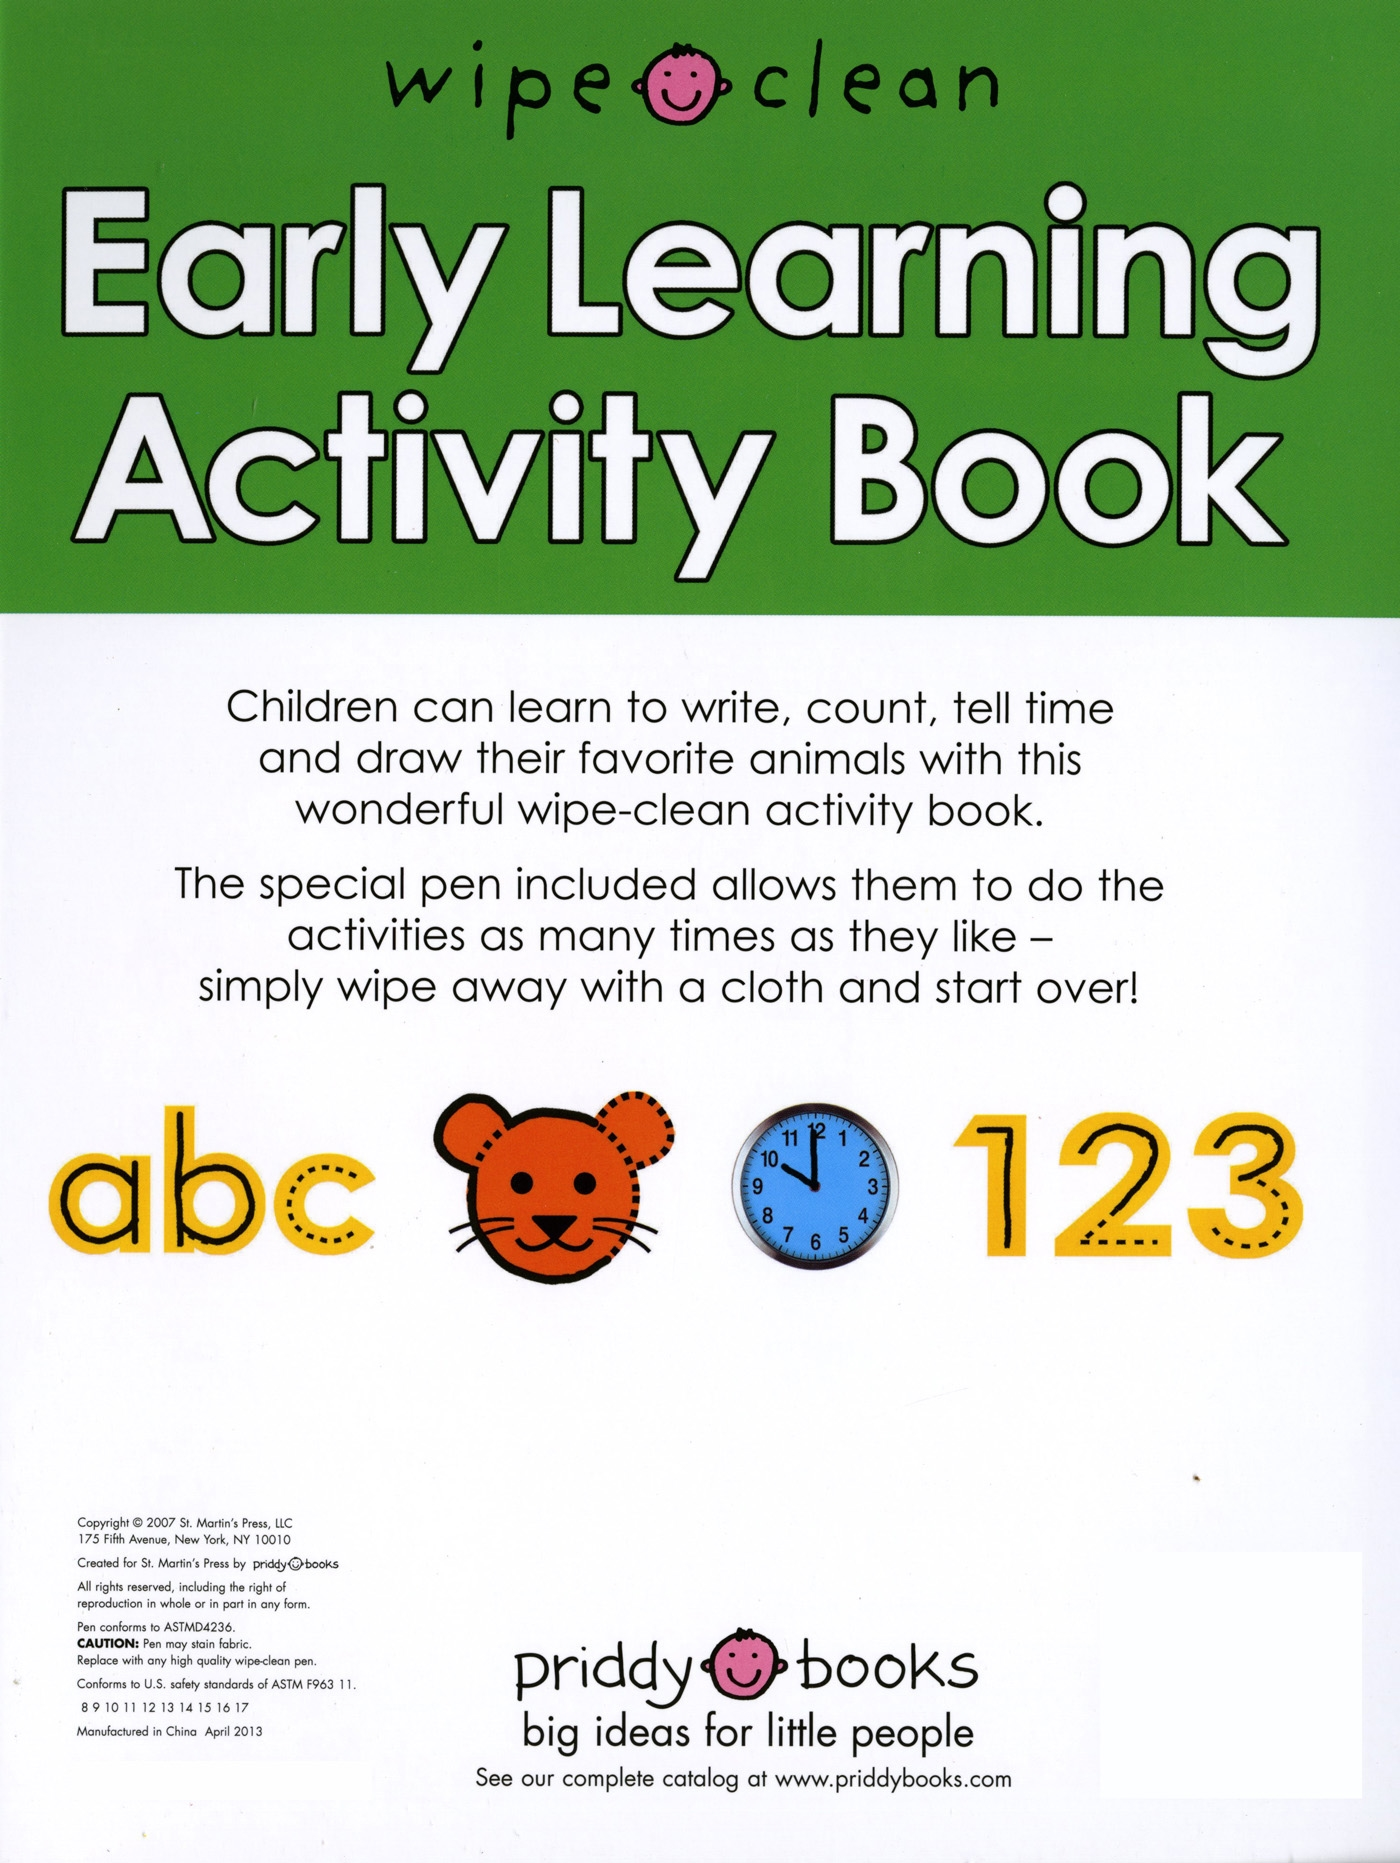 Wipe Clean: Early Learning Activity Book - Walmart.com